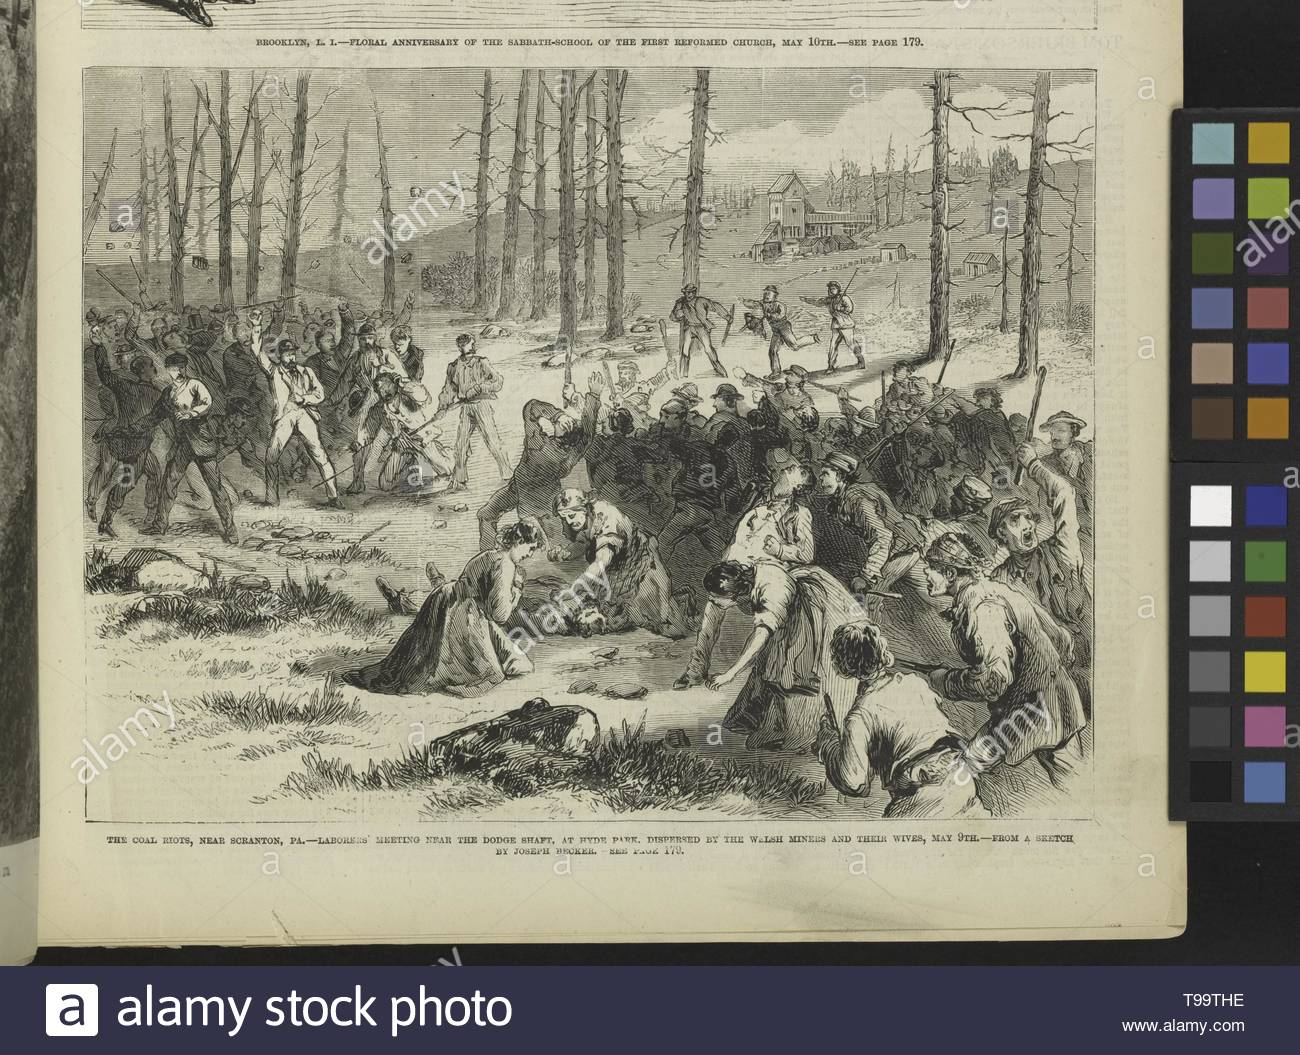 Becker,Joseph(1841-1910)-The coal riots, near Scranton, PA  - Laborers& x27, meeting near the Dodge shaft, at Hyde Park, despersed by the Welsh miners and their wives, May 9th - Stock Image